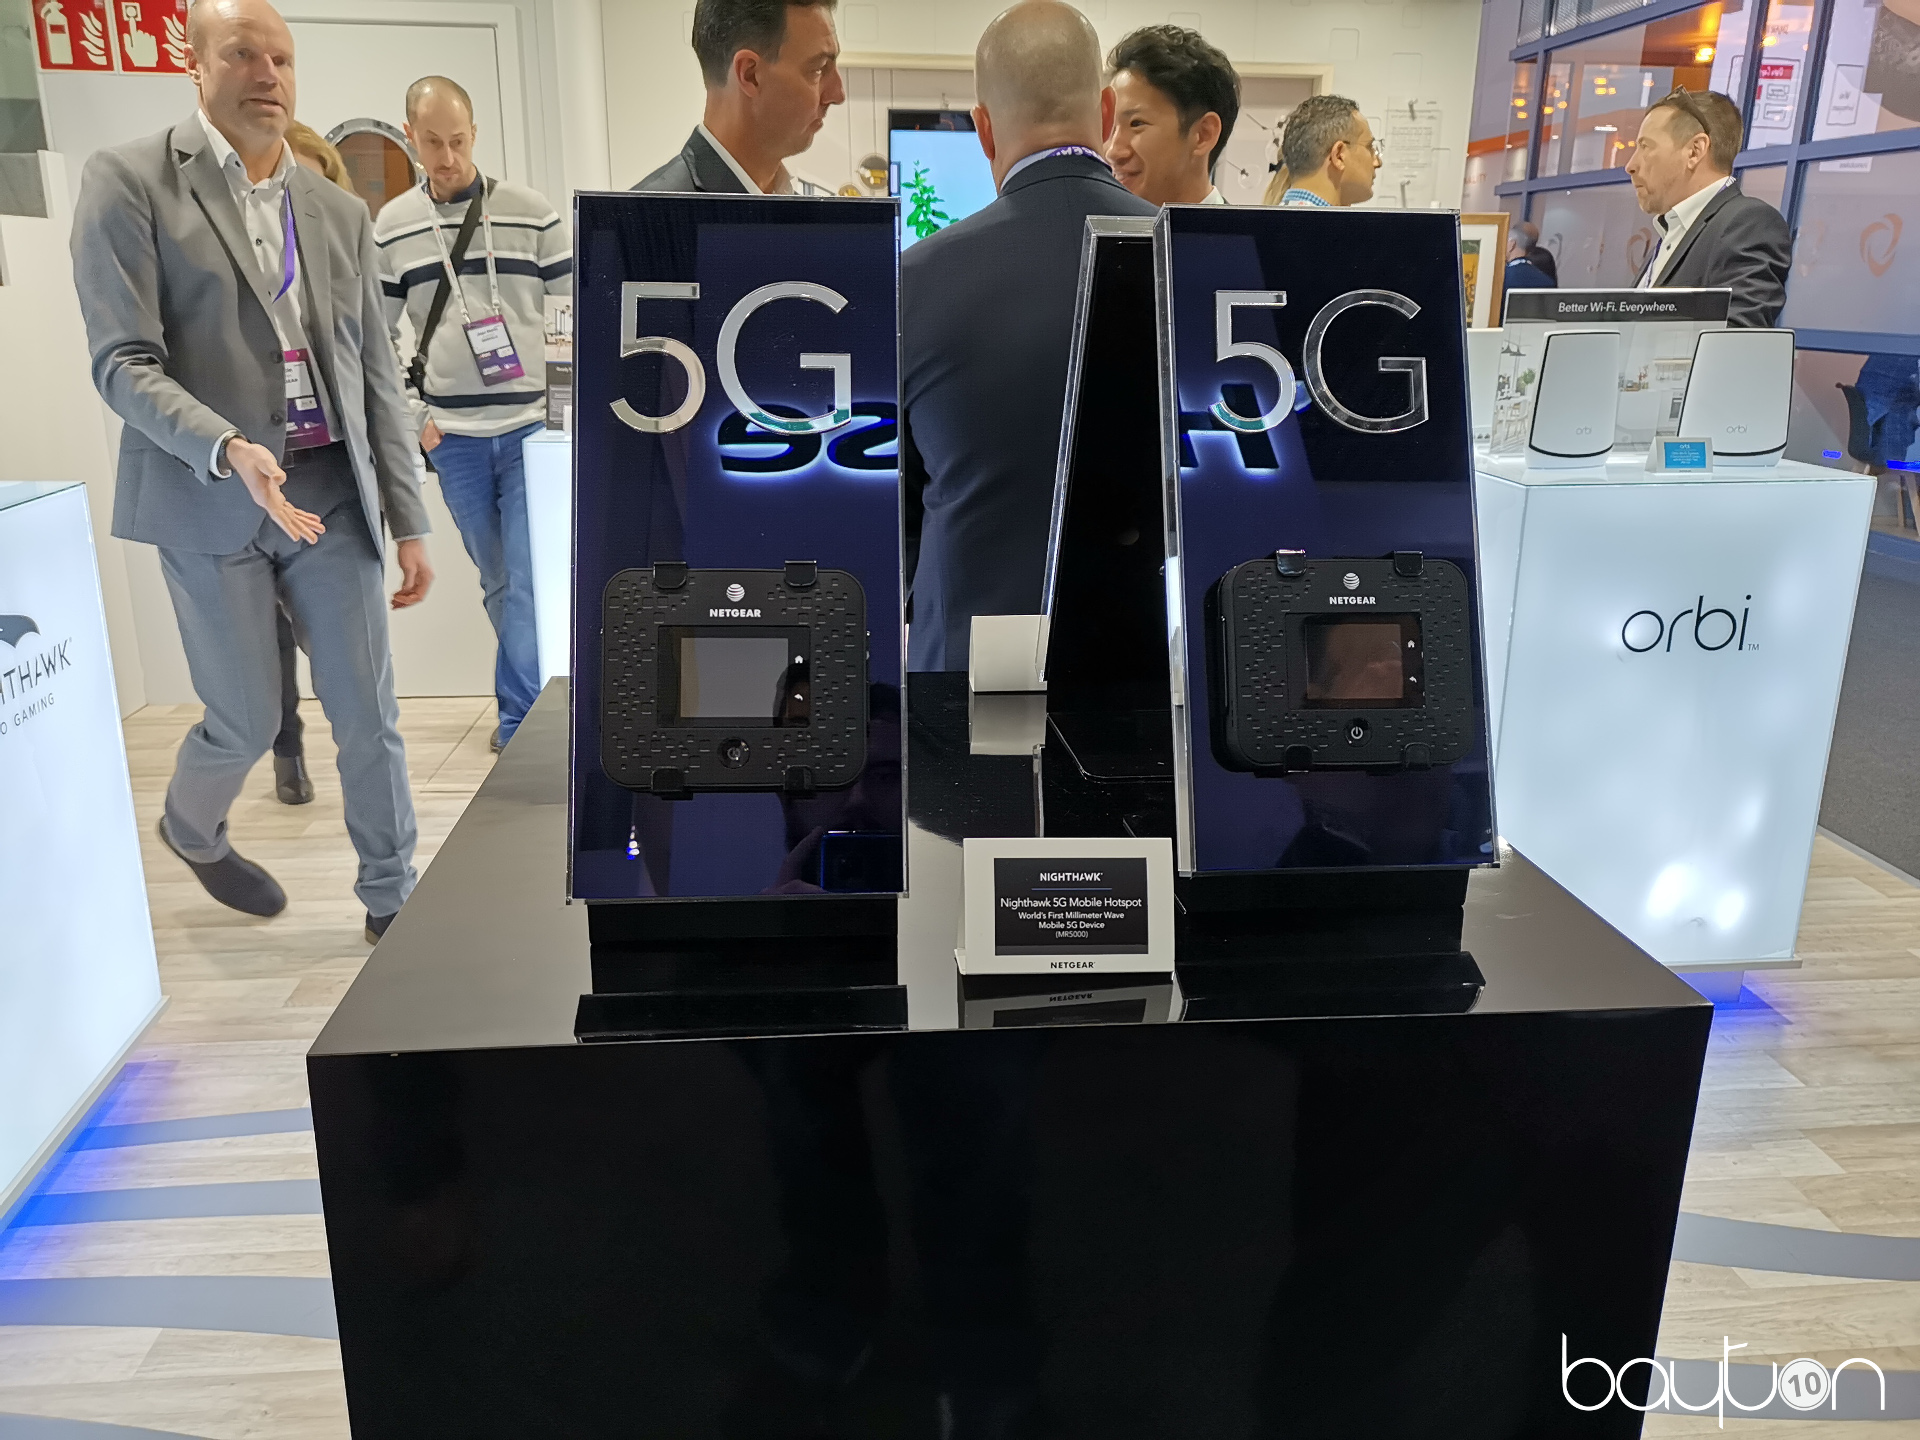 Netgear and their 5G mifi devices